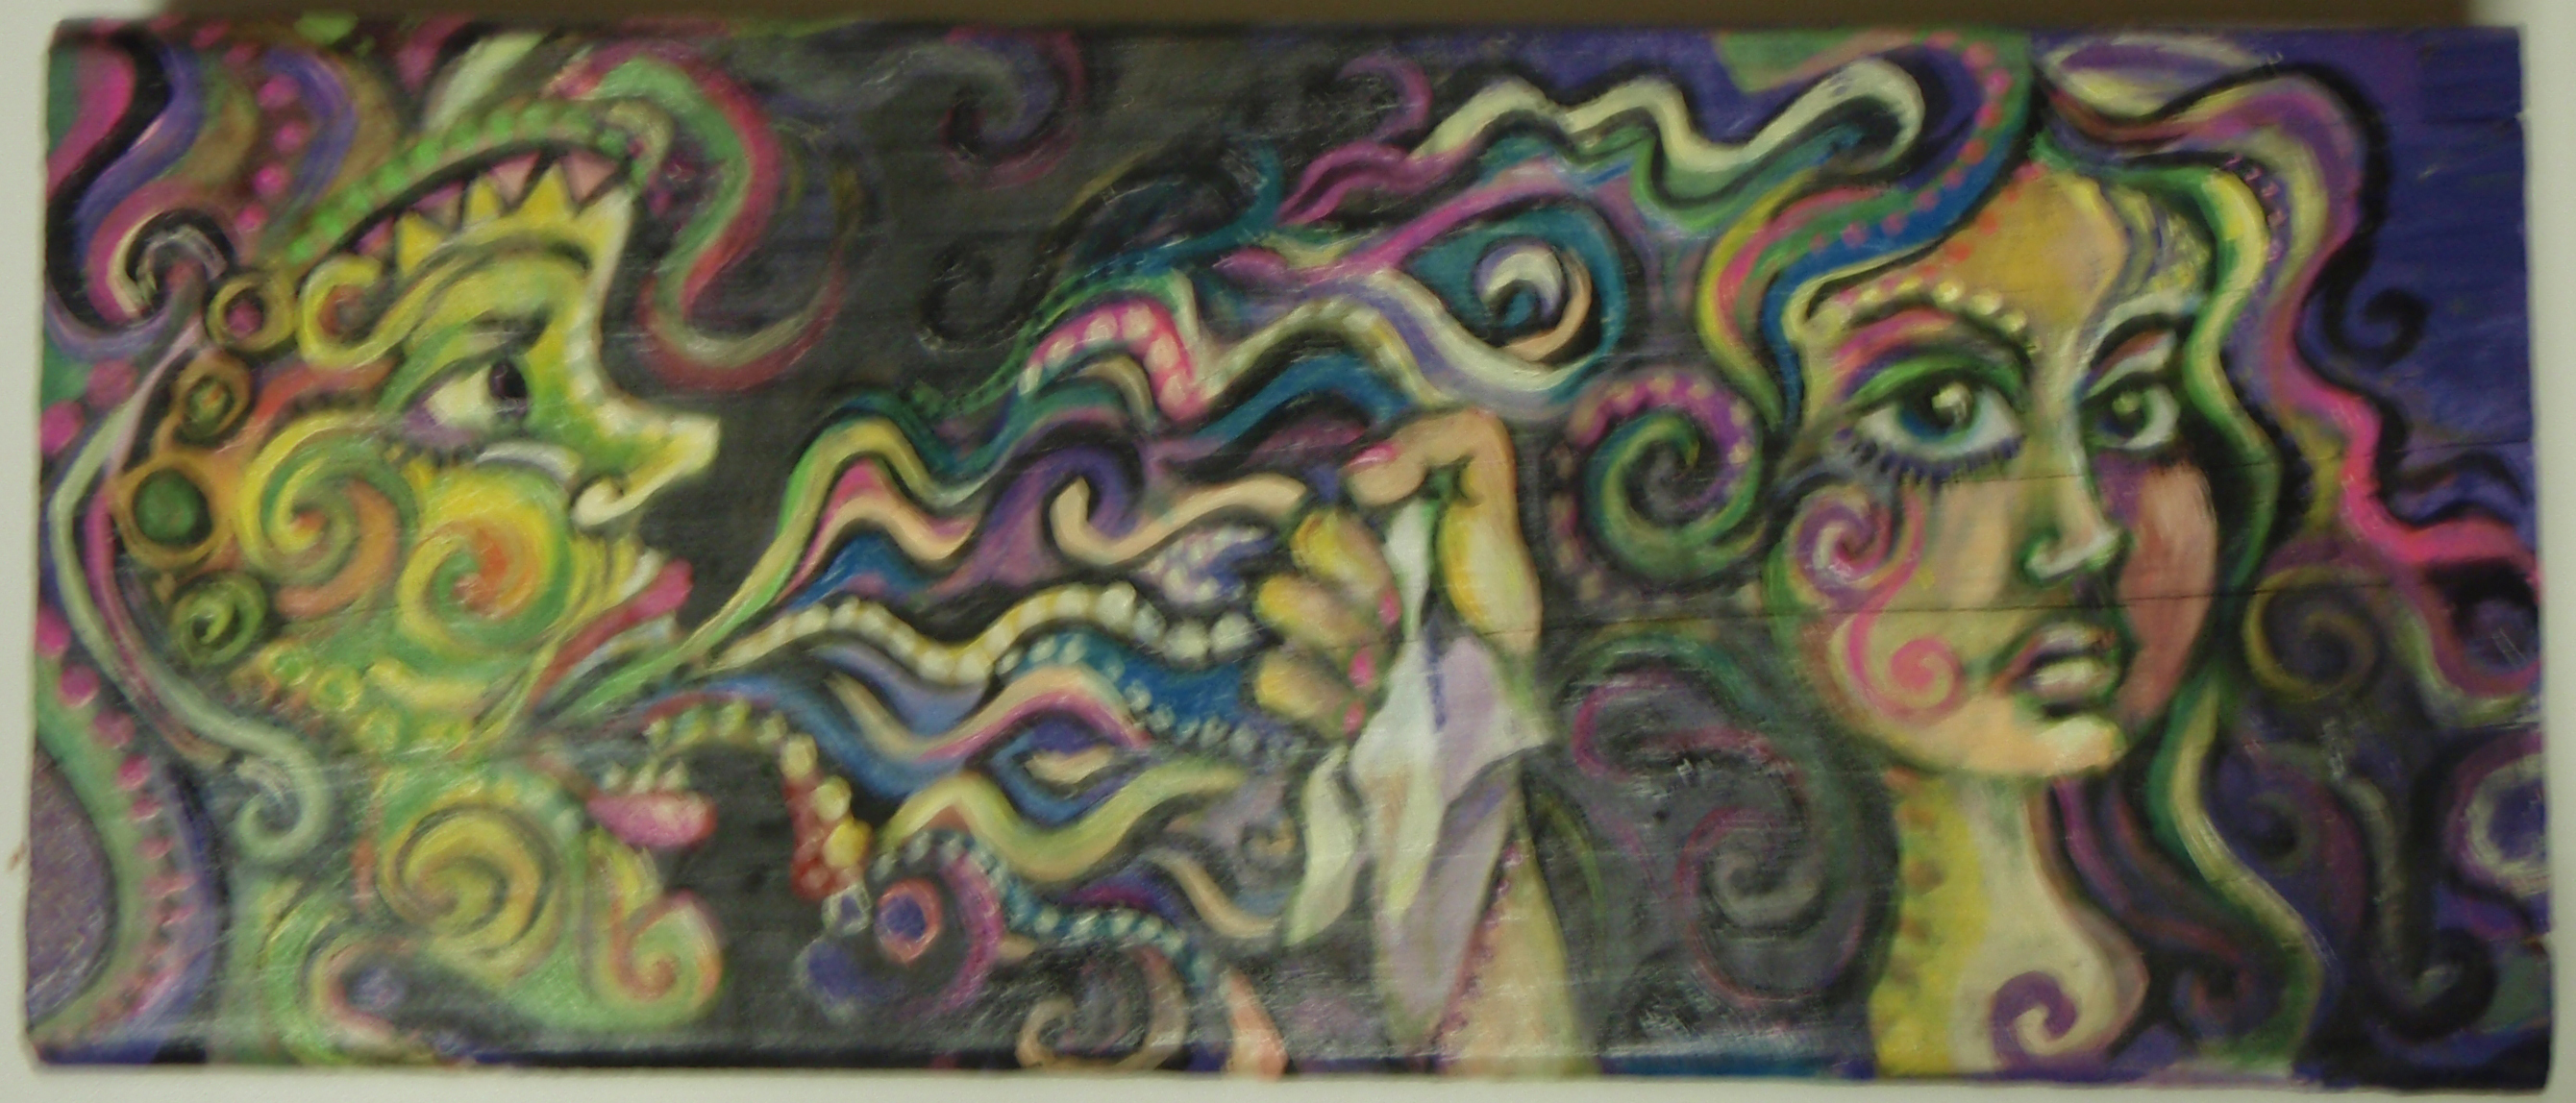 Contagious, Acrylic on Wood, 2009